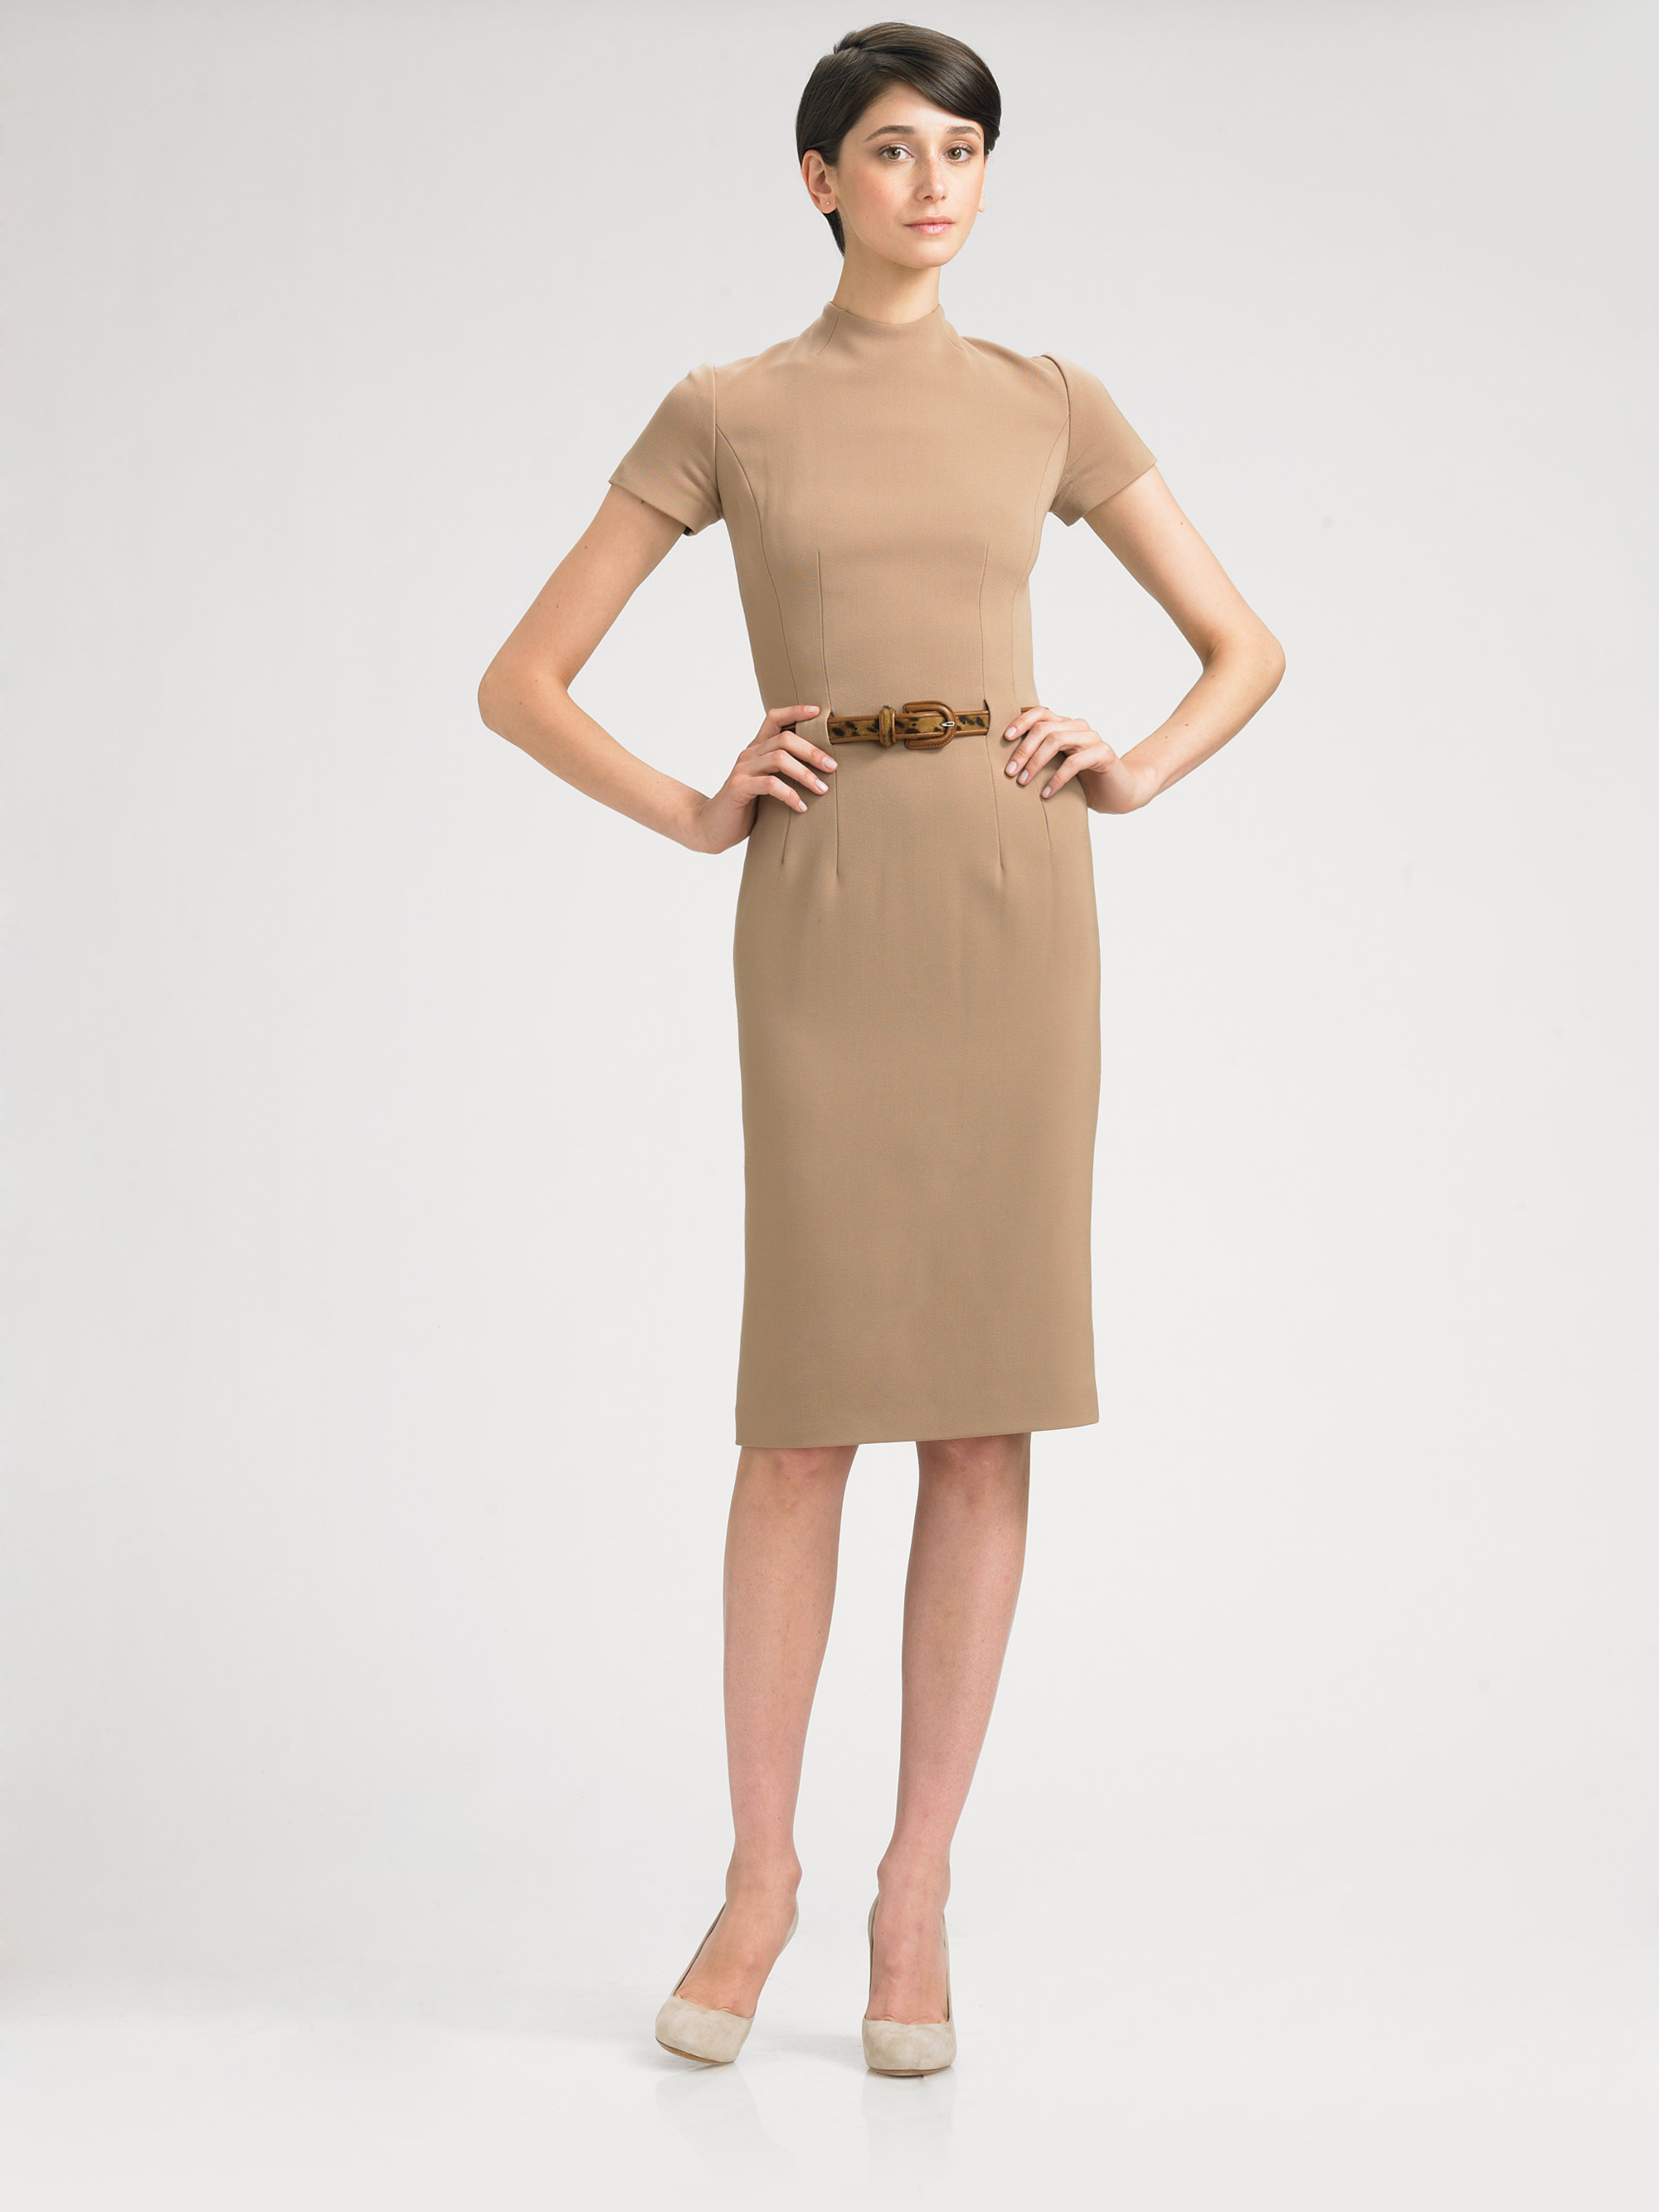 c85d1fbe Ralph Lauren Black Label Belted Mock Turtleneck Dress in Brown - Lyst